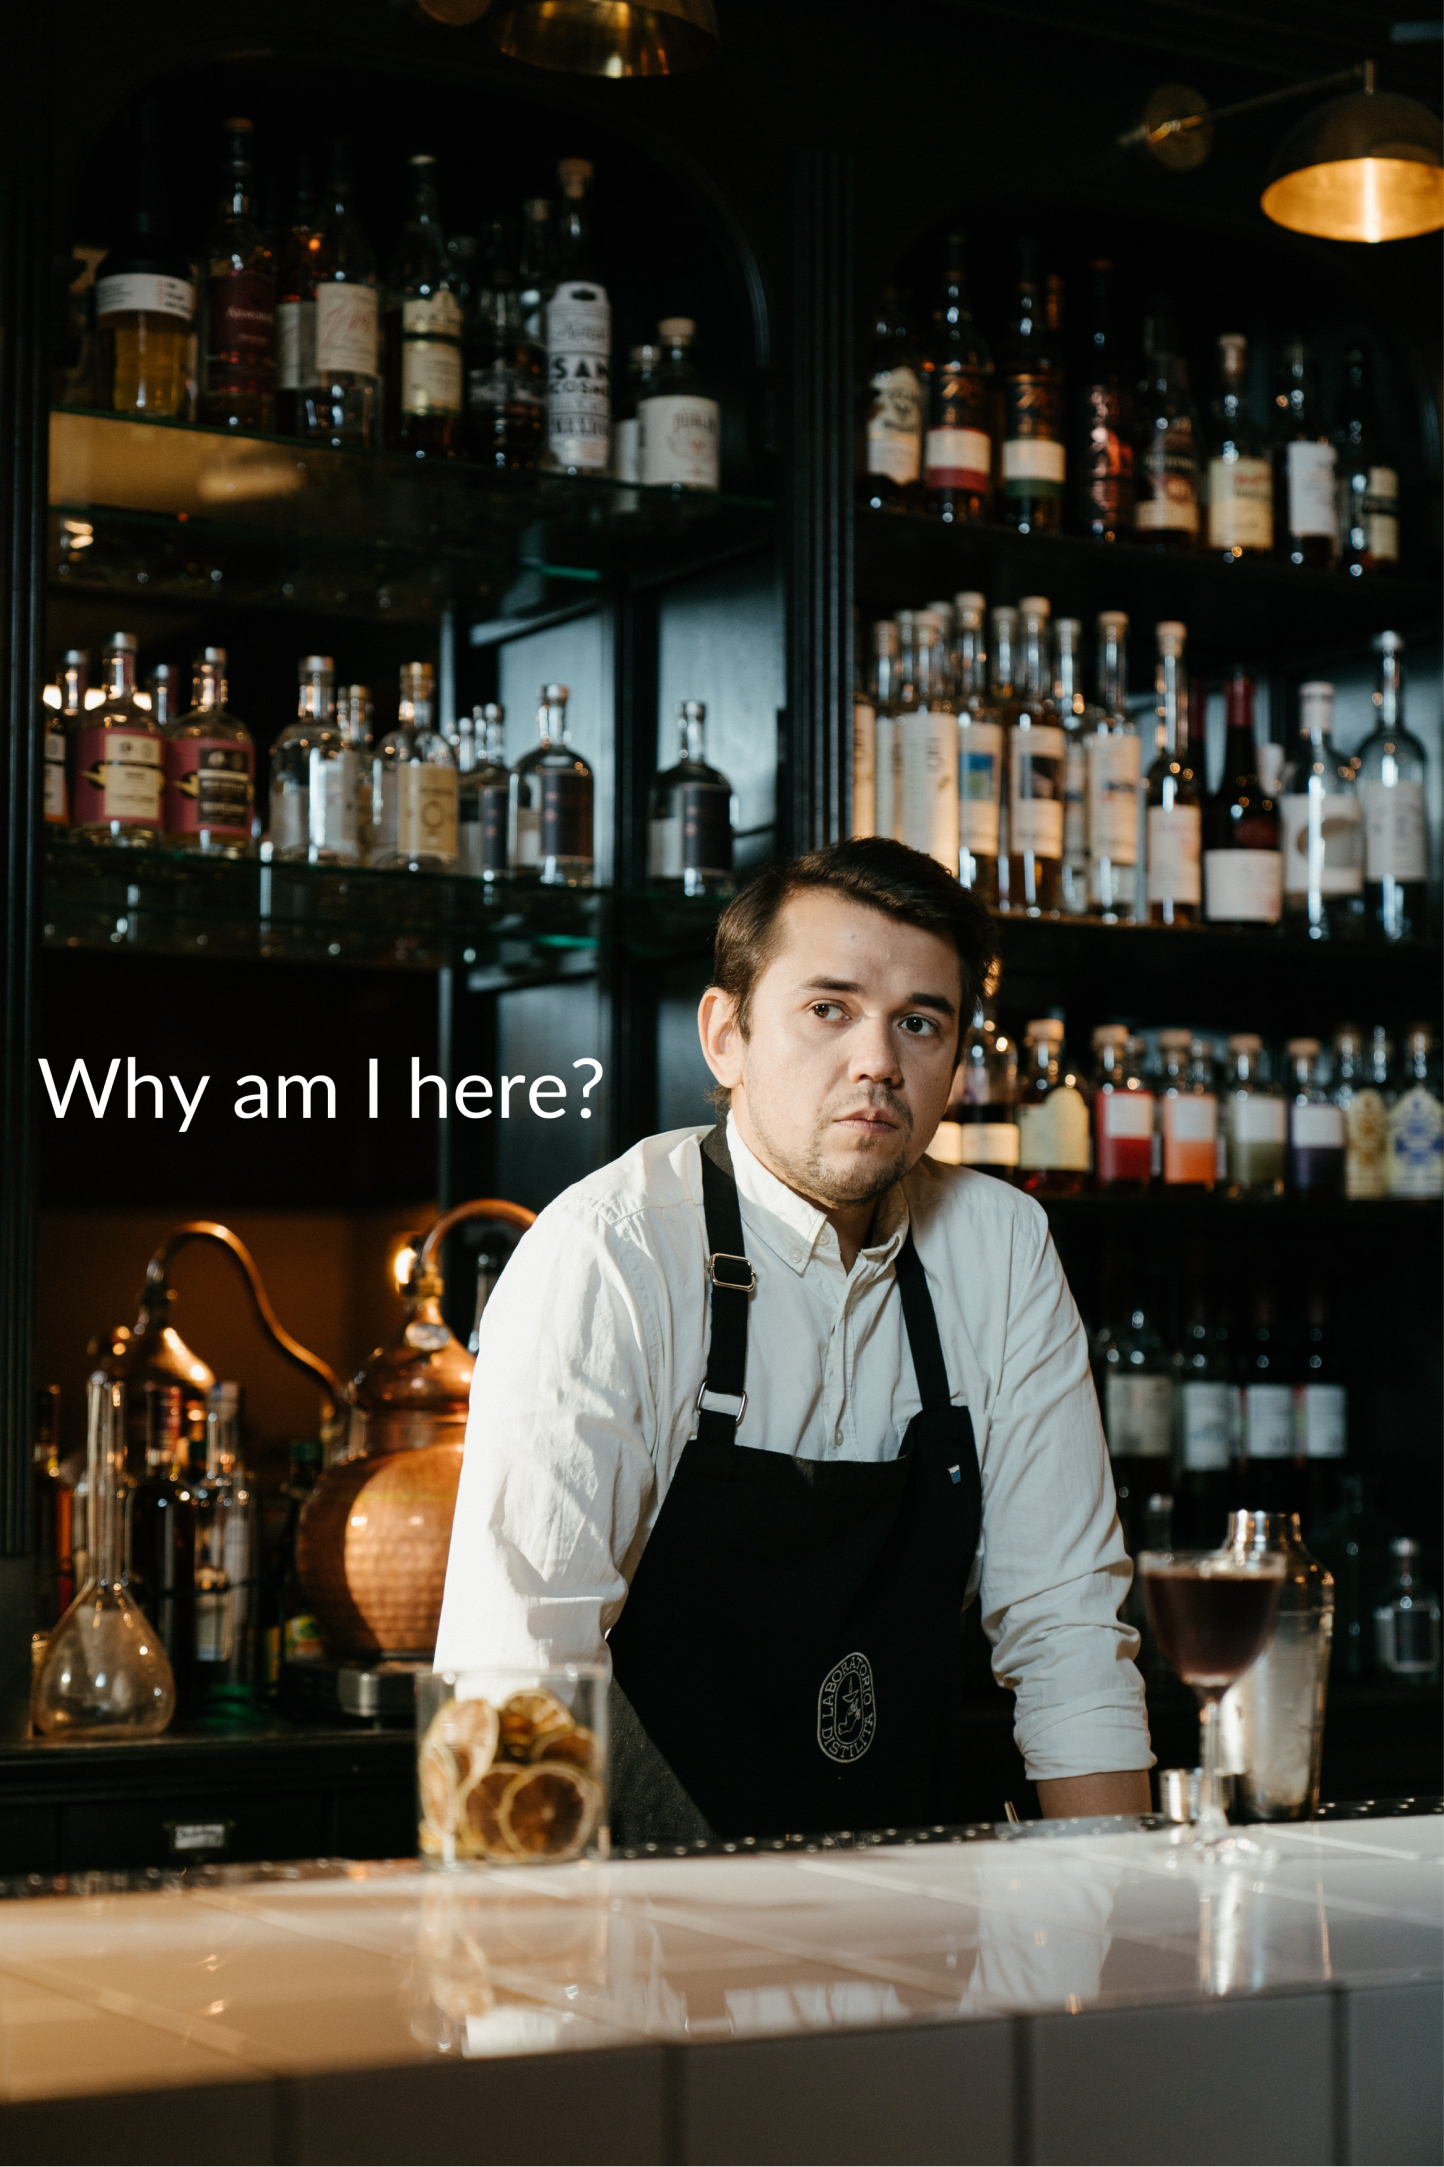 why-am-i-here-Tales-from-your-bartender-june-2021